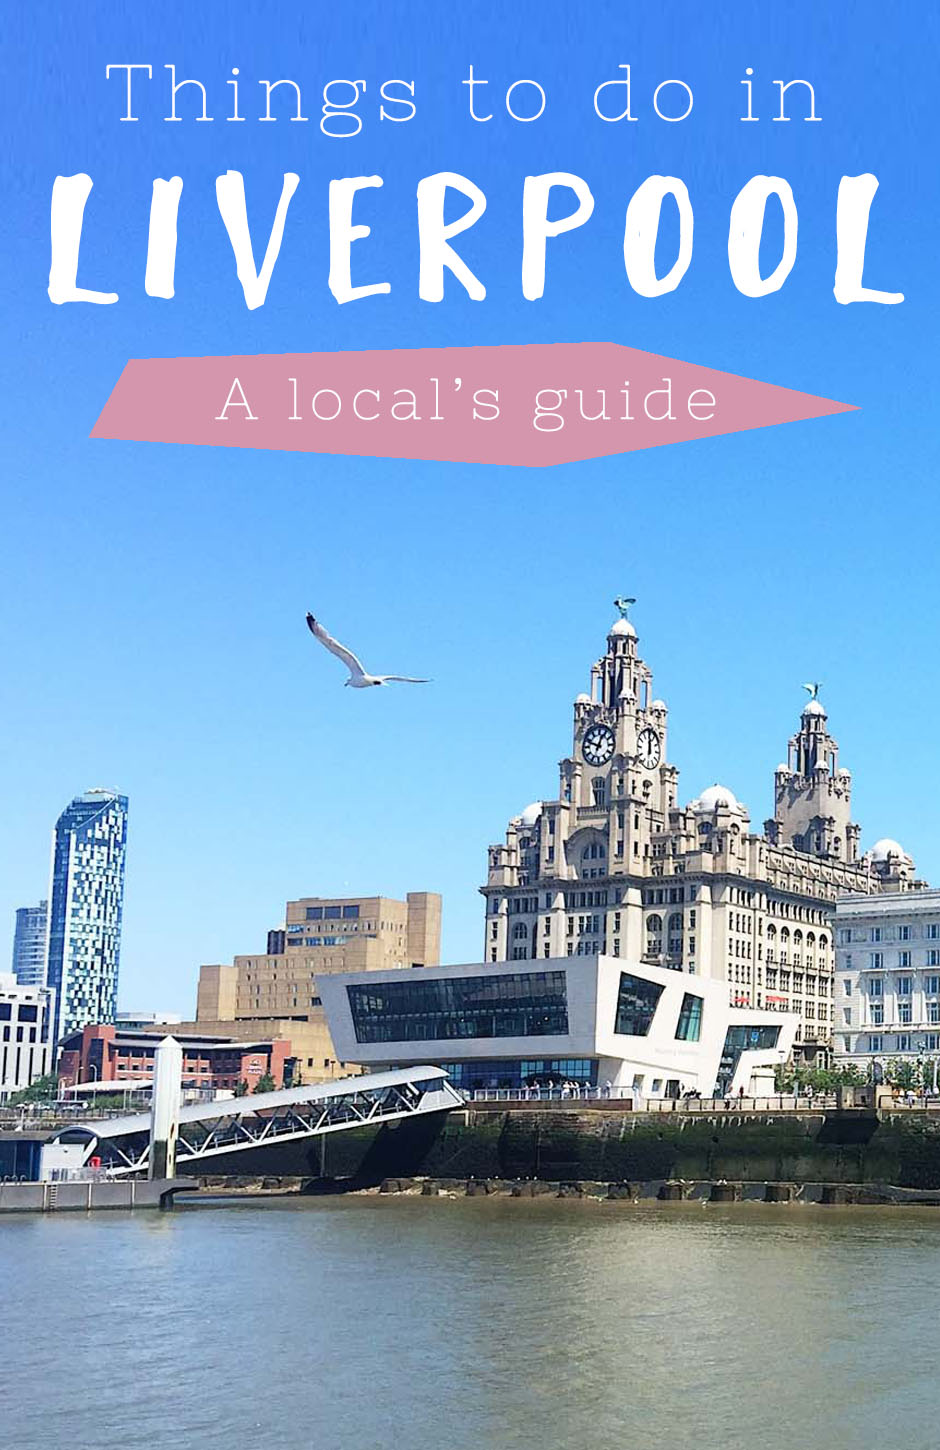 Things to do in Liverpool: A local's guide